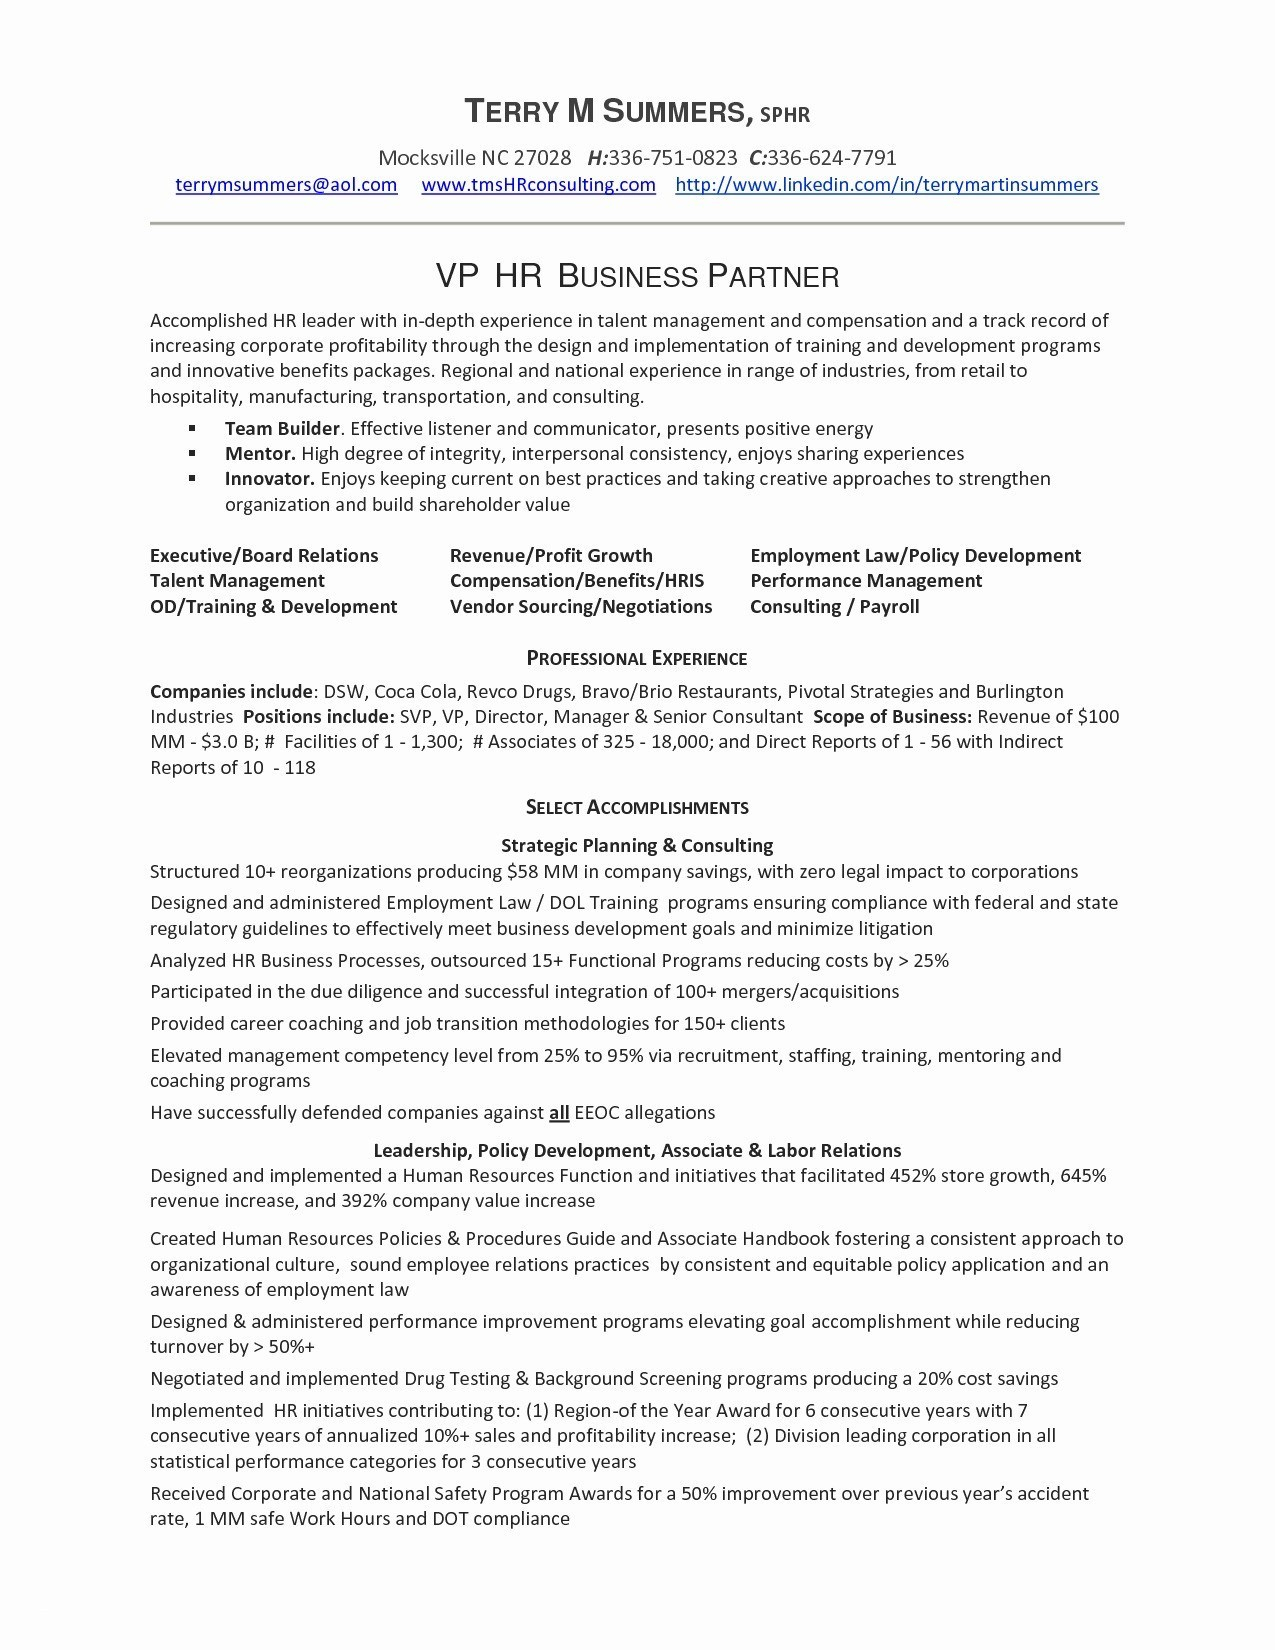 My Perfect Resume Phone Number - My Perfect Resume Customer Service New My Perfect Resume Phone